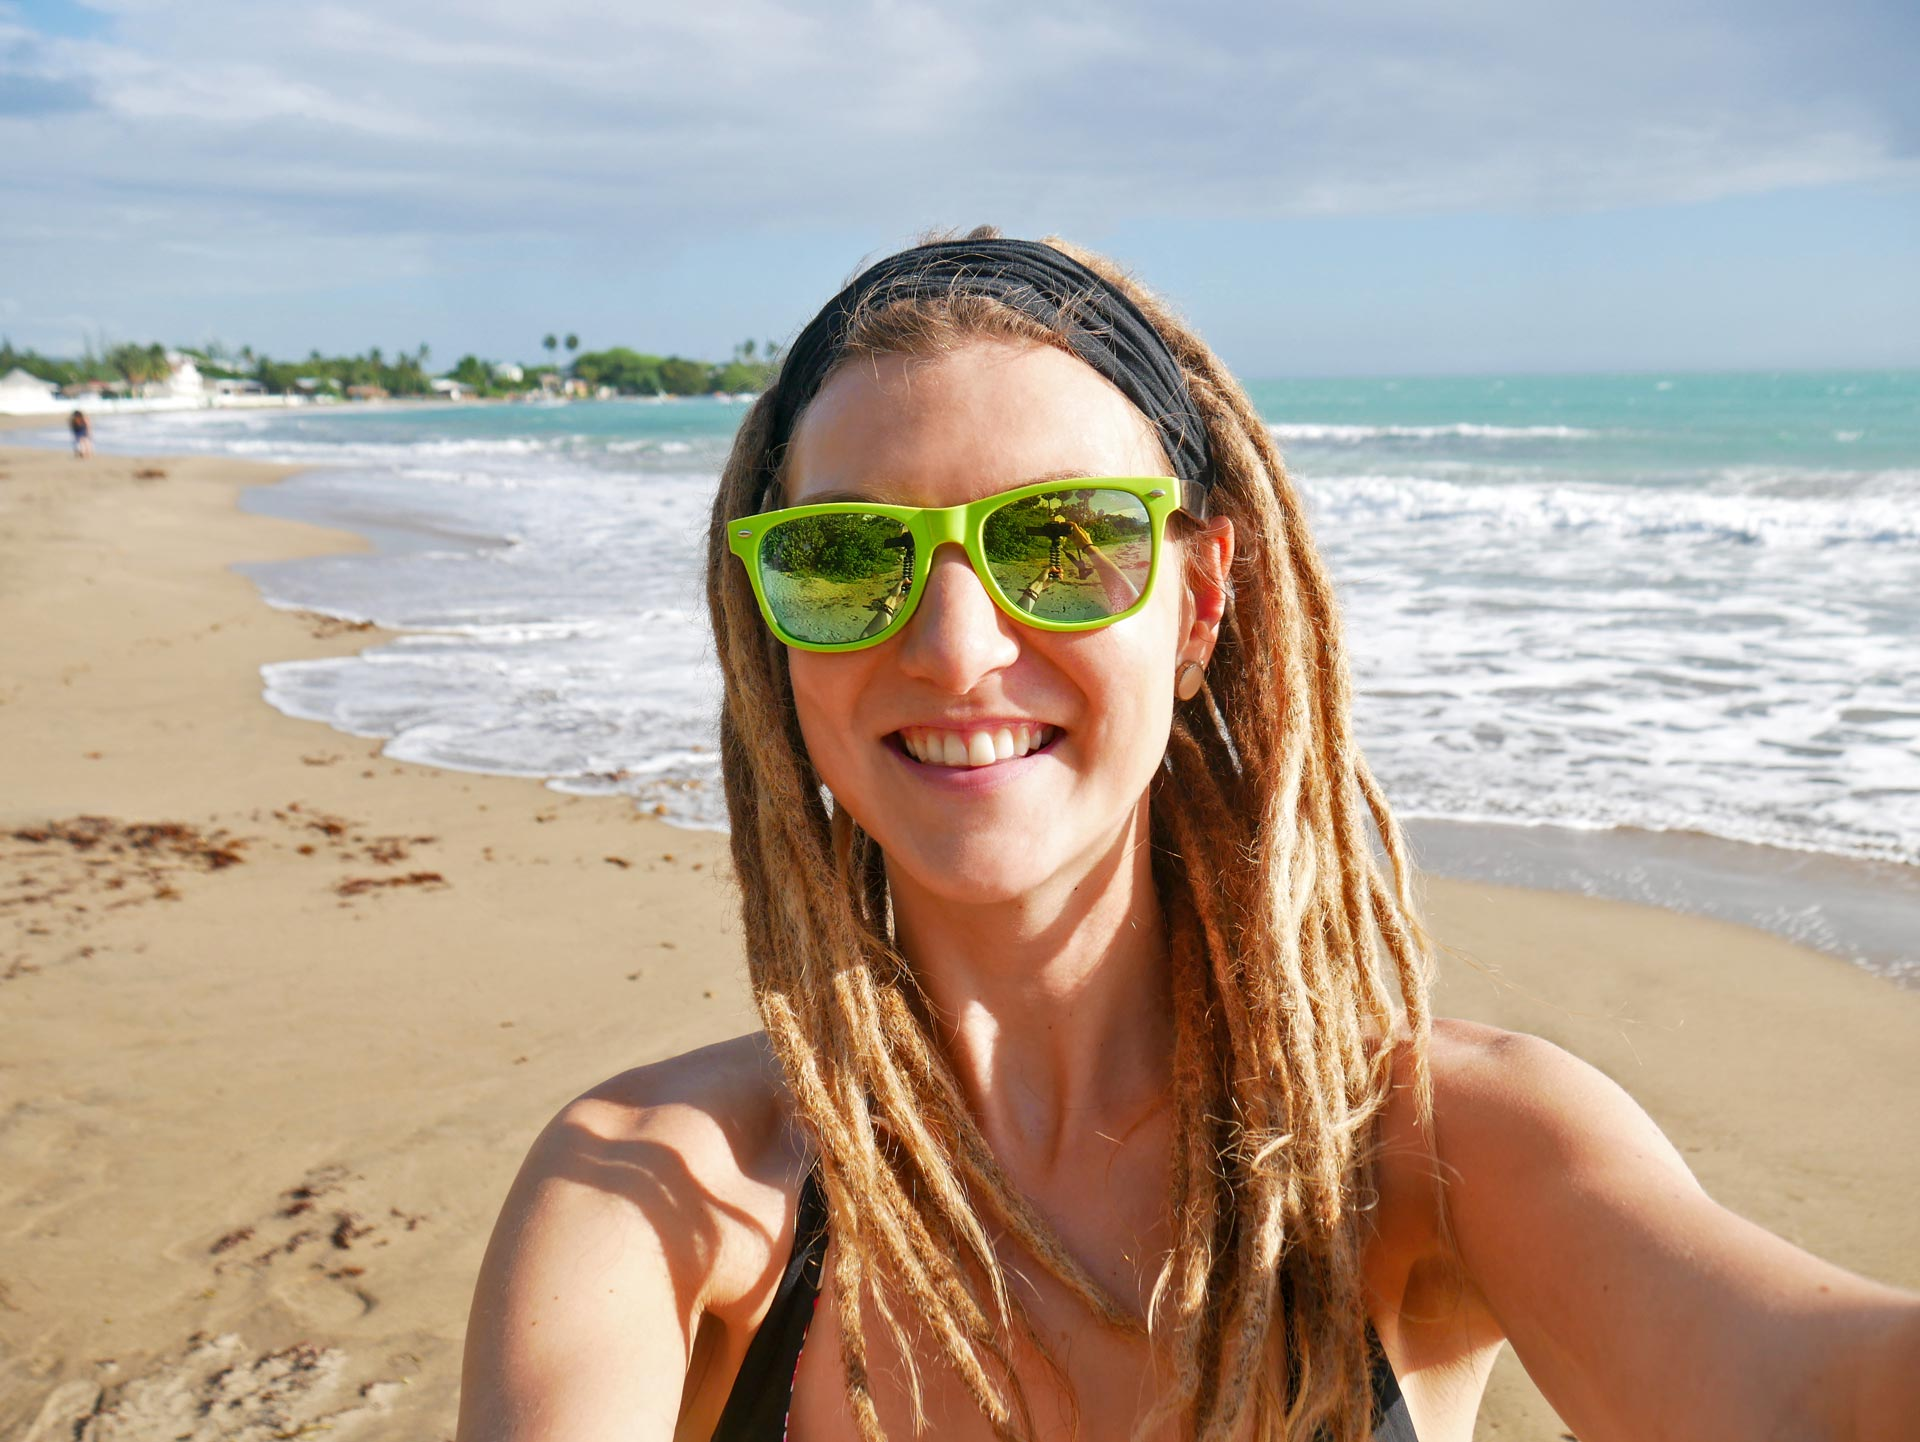 Blonde rasta girl at Treasure Beach, Jamaica